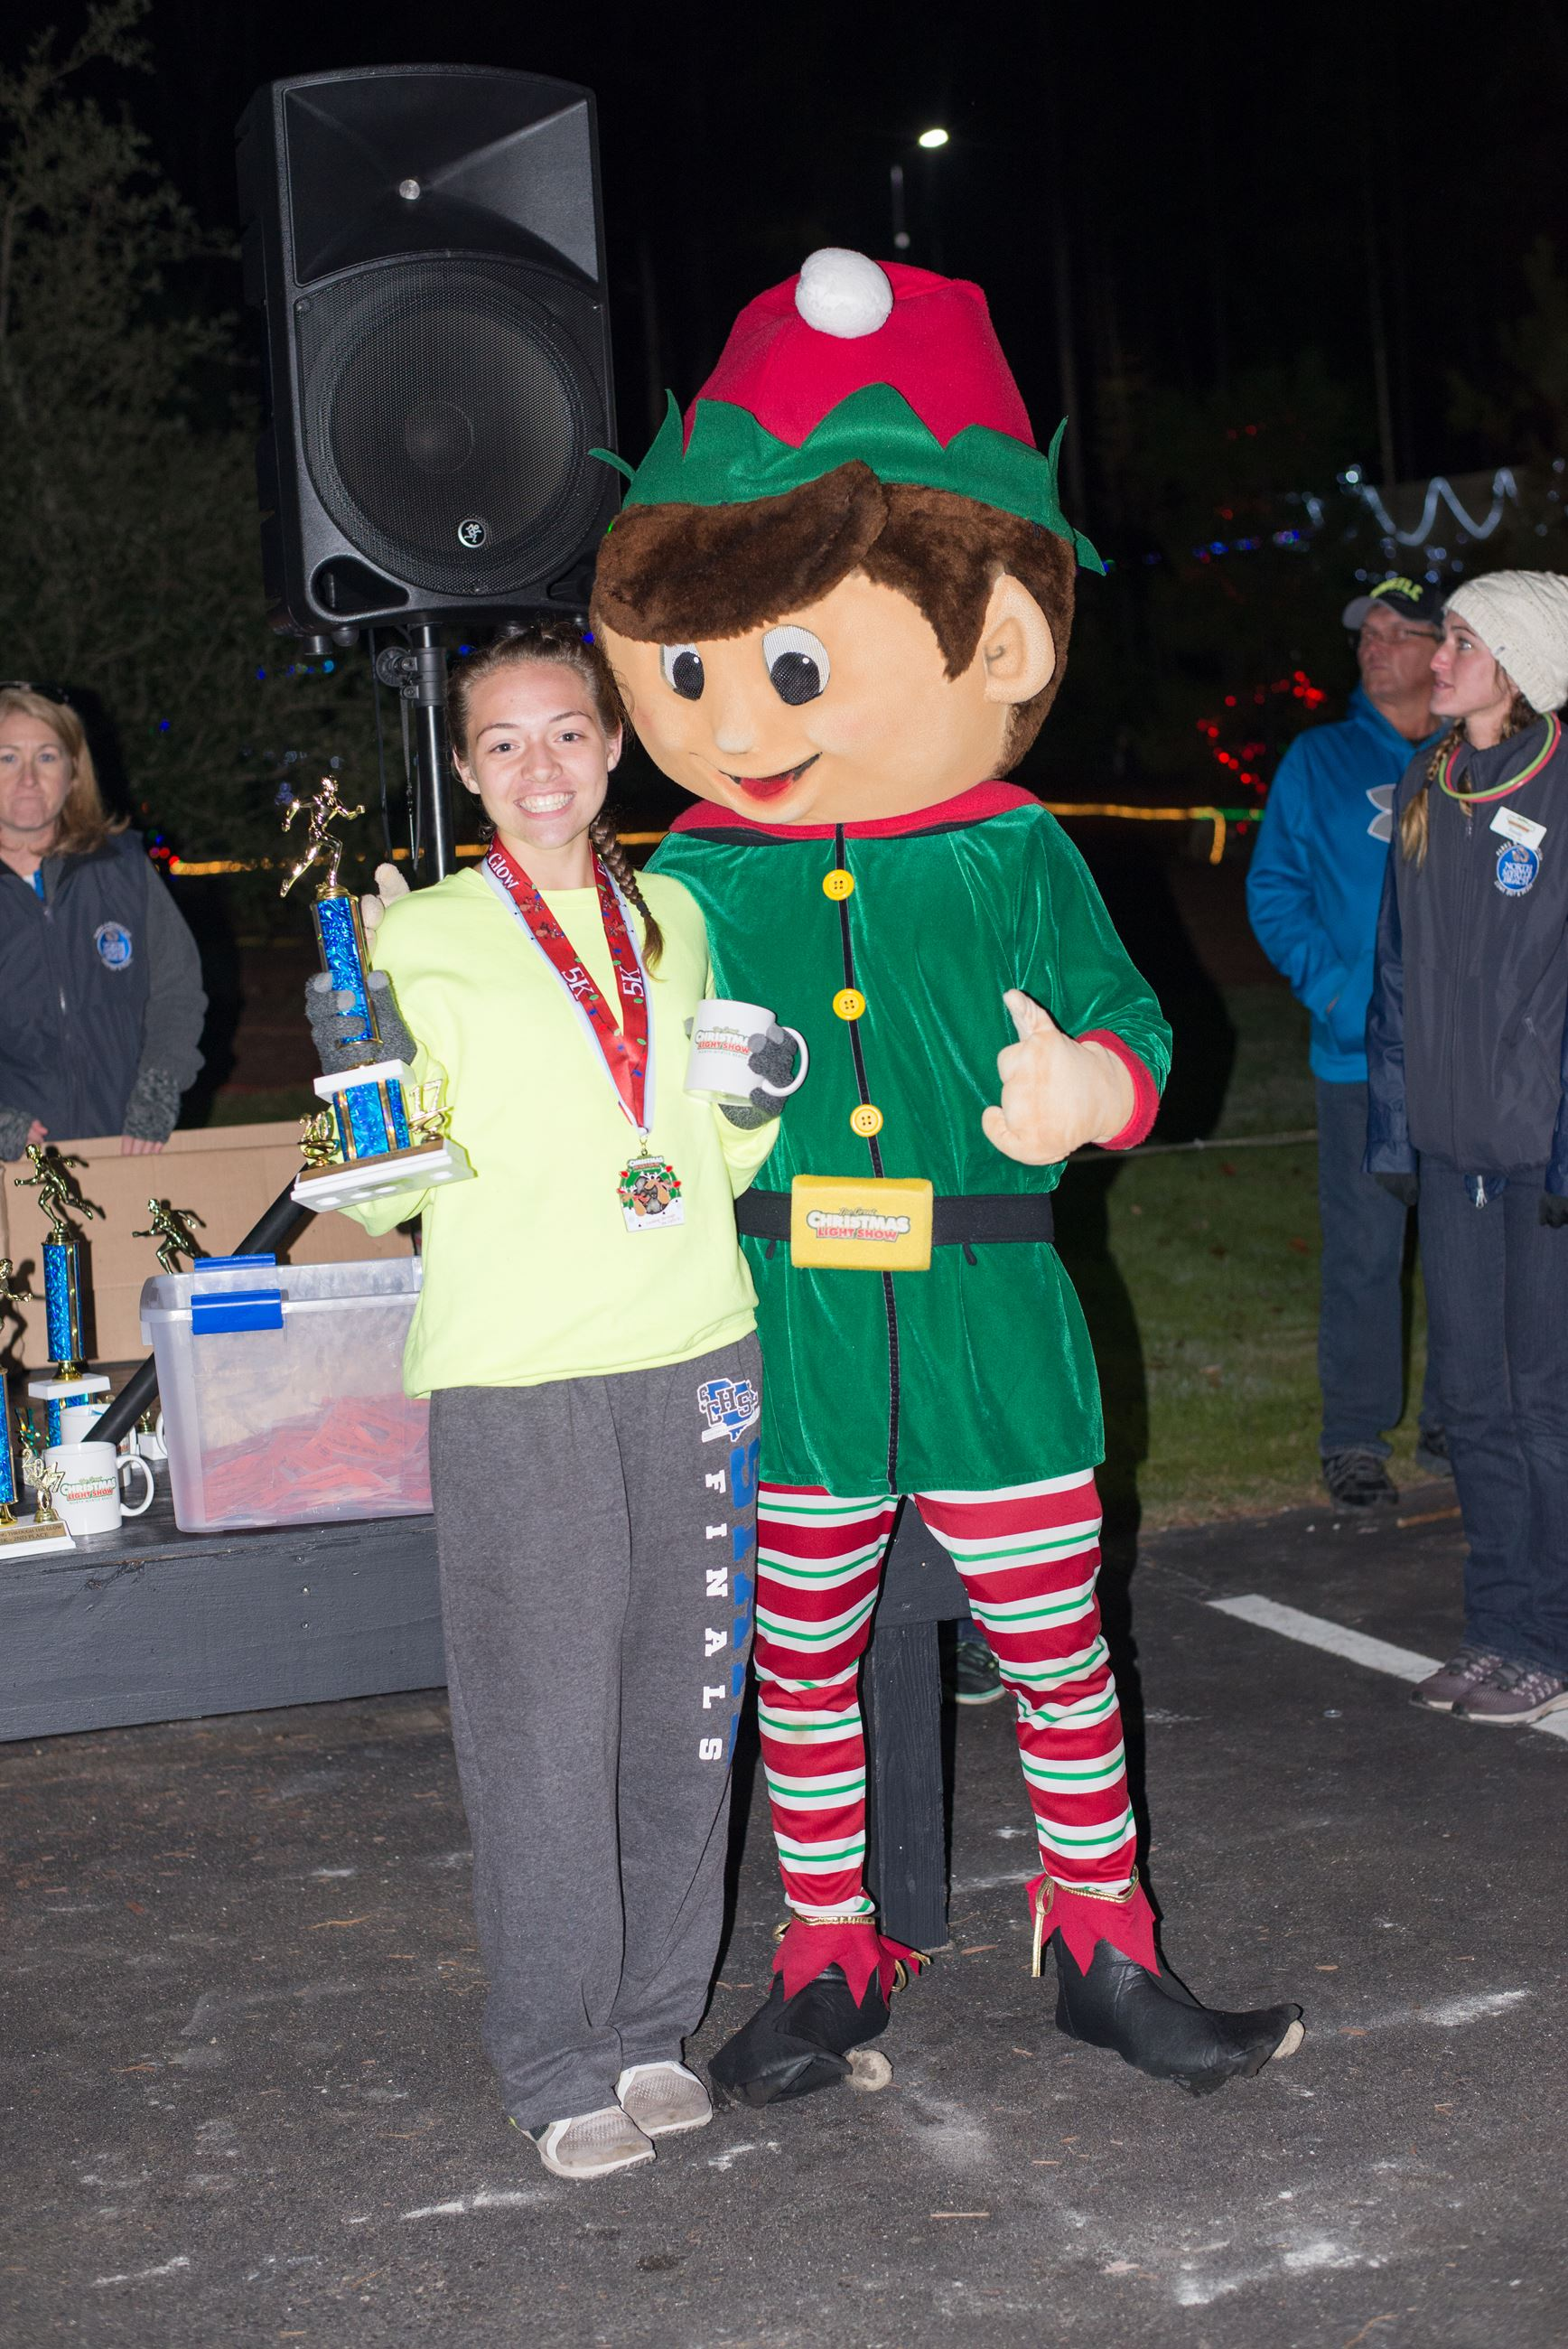 Young Woman Holding a Mug and Trophy Posing with an Elf